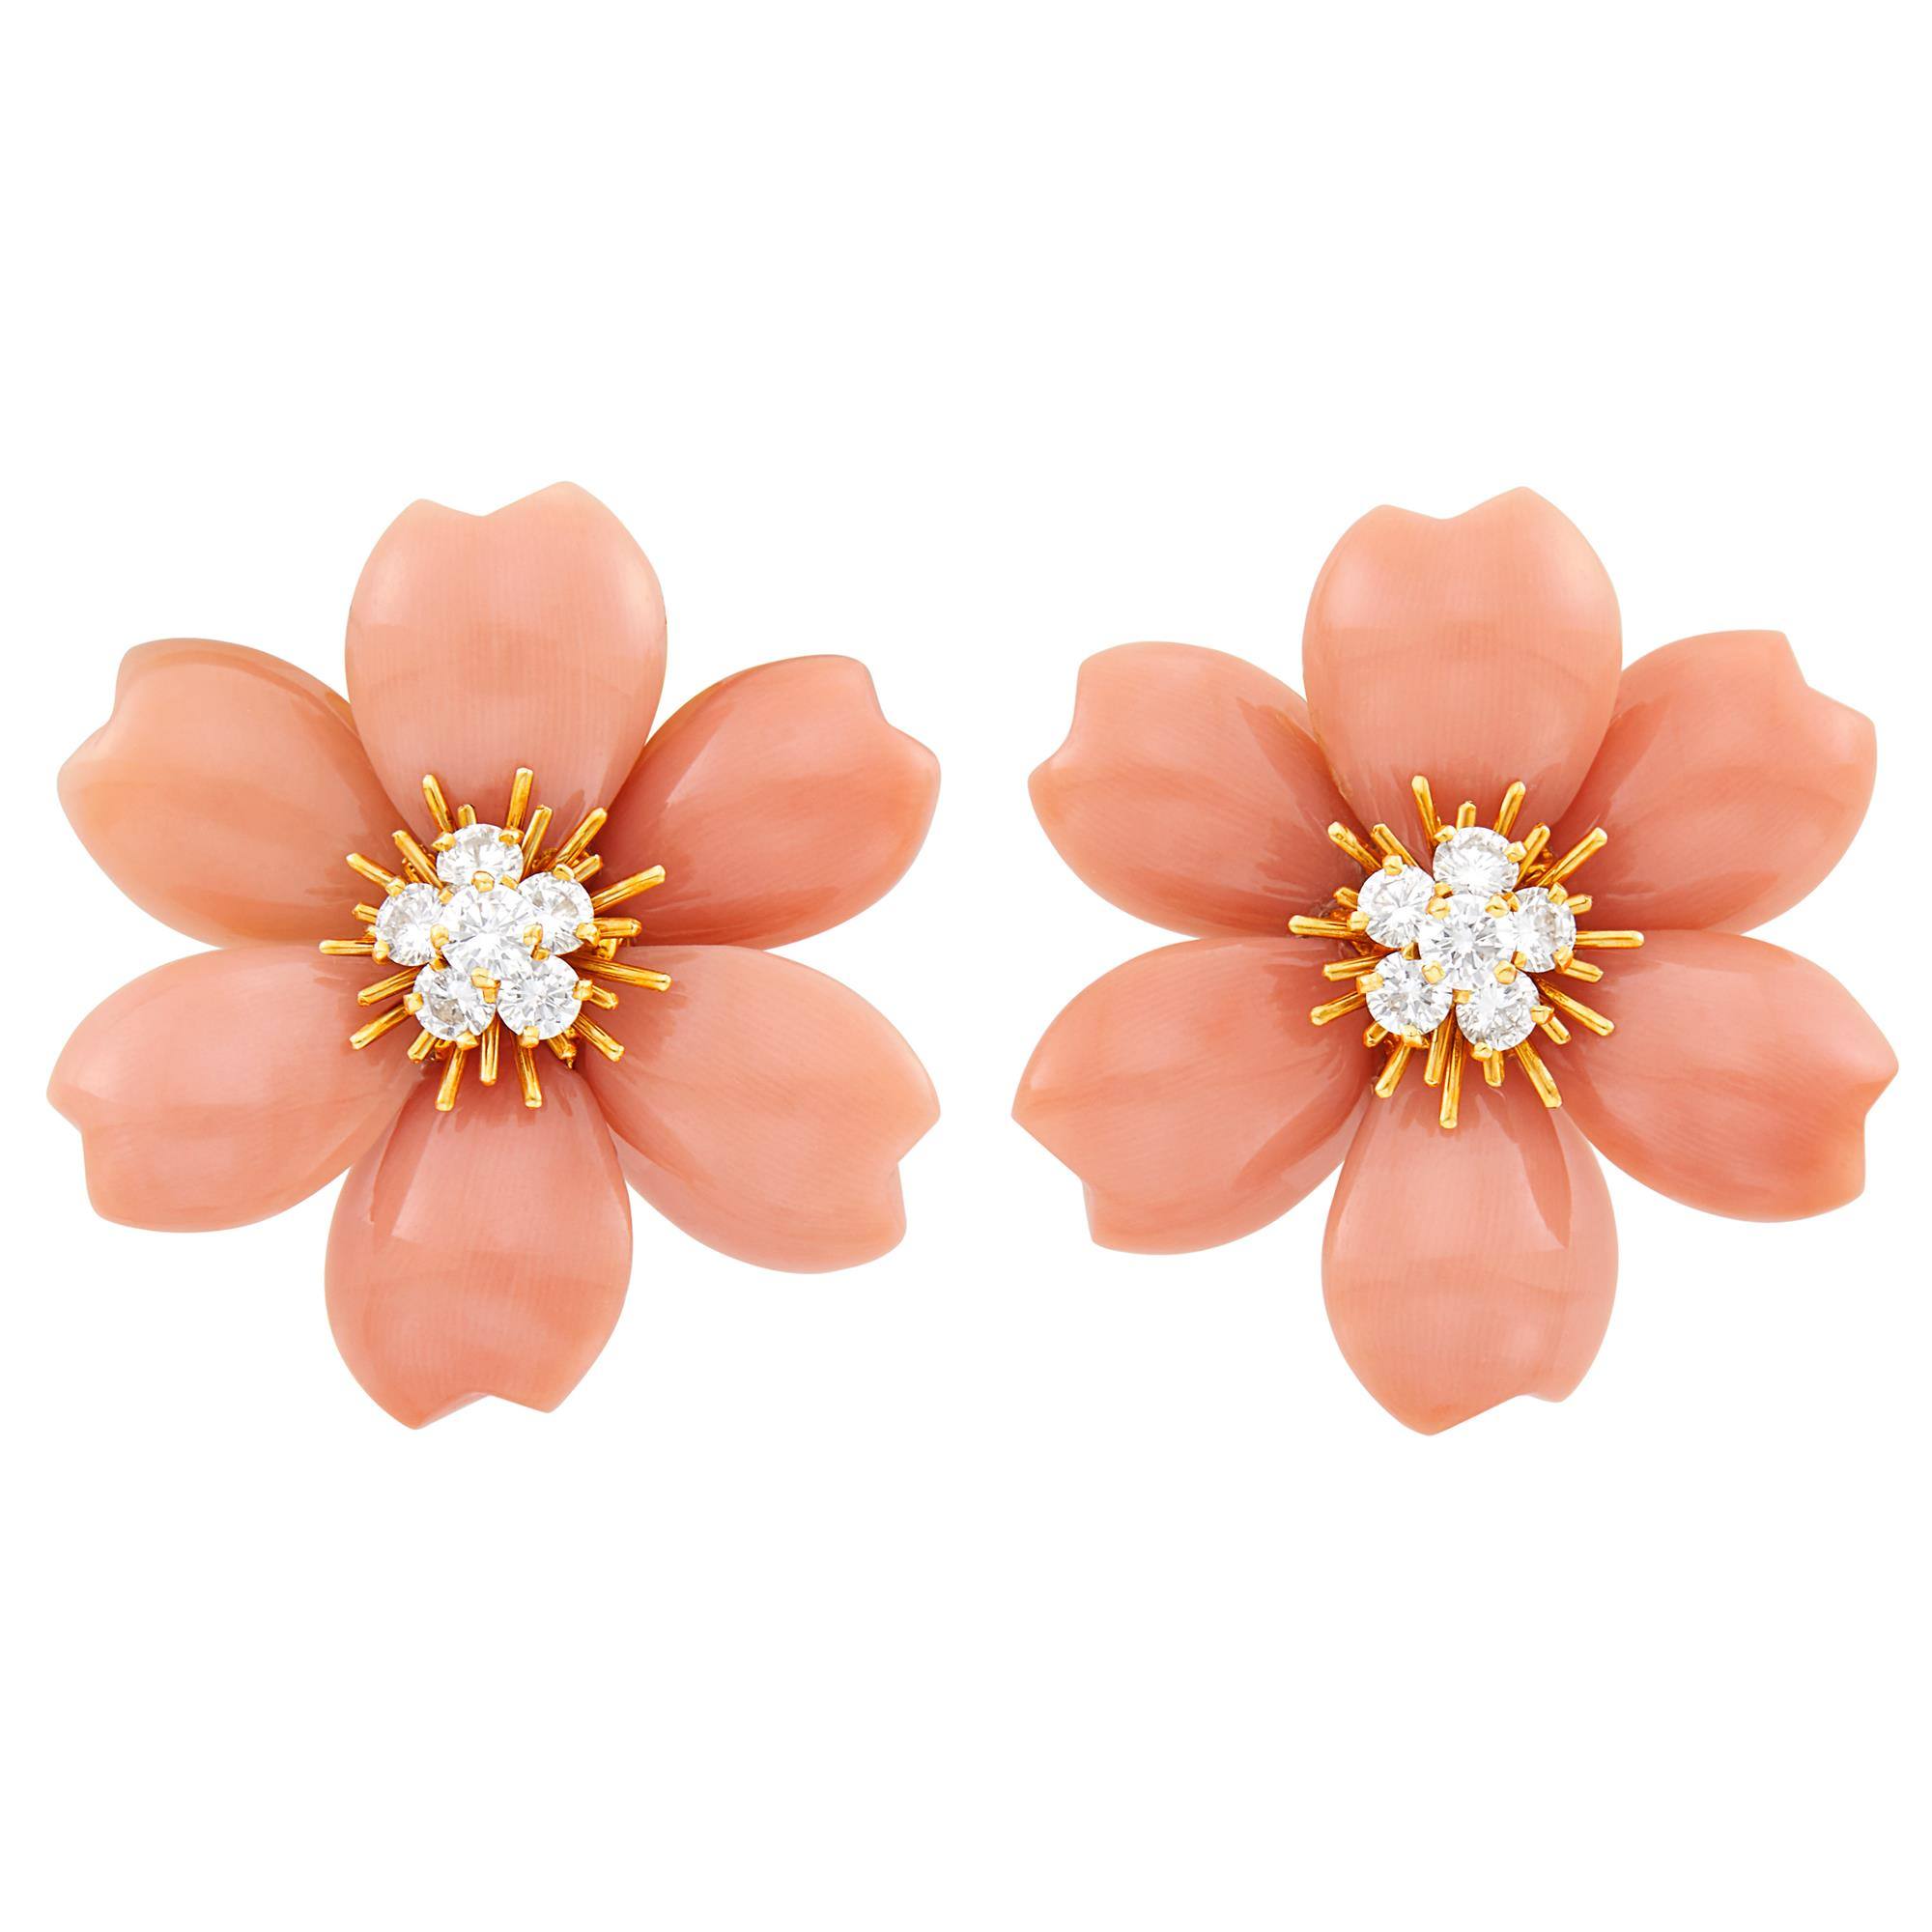 Lot image - Van Cleef & Arpels Pair of Gold, Carved Coral and Diamond Rose de Noel Flower Earclips, France